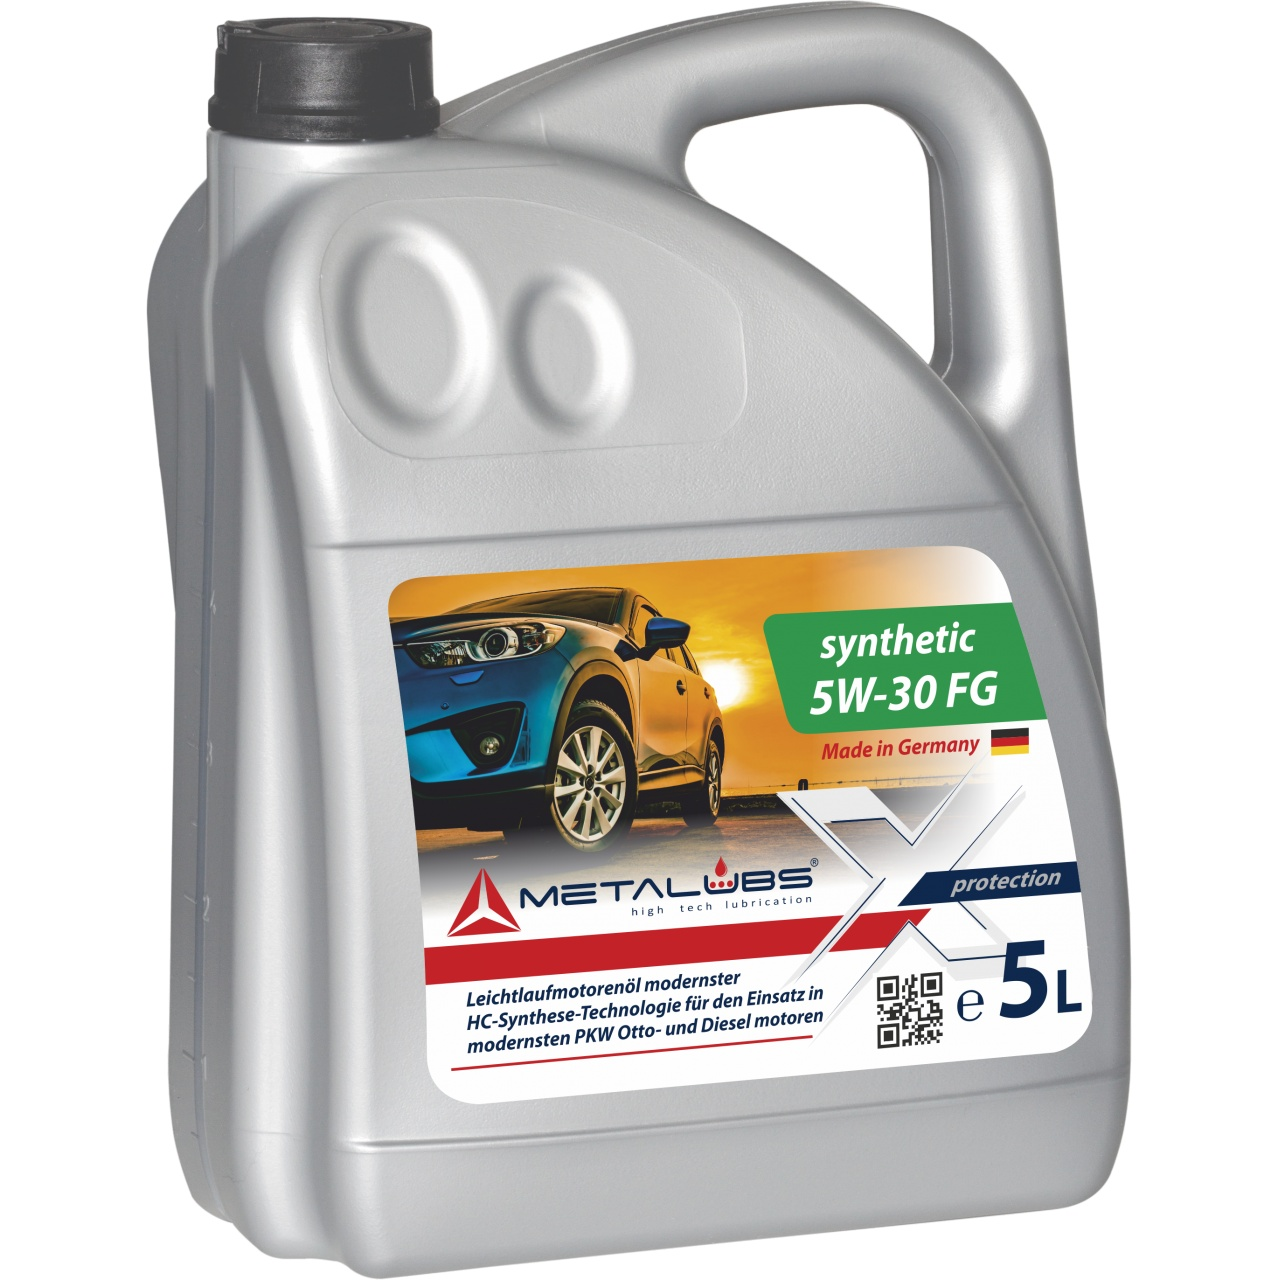 Metalubs Synthetic Oil 5W-30 FG 5l